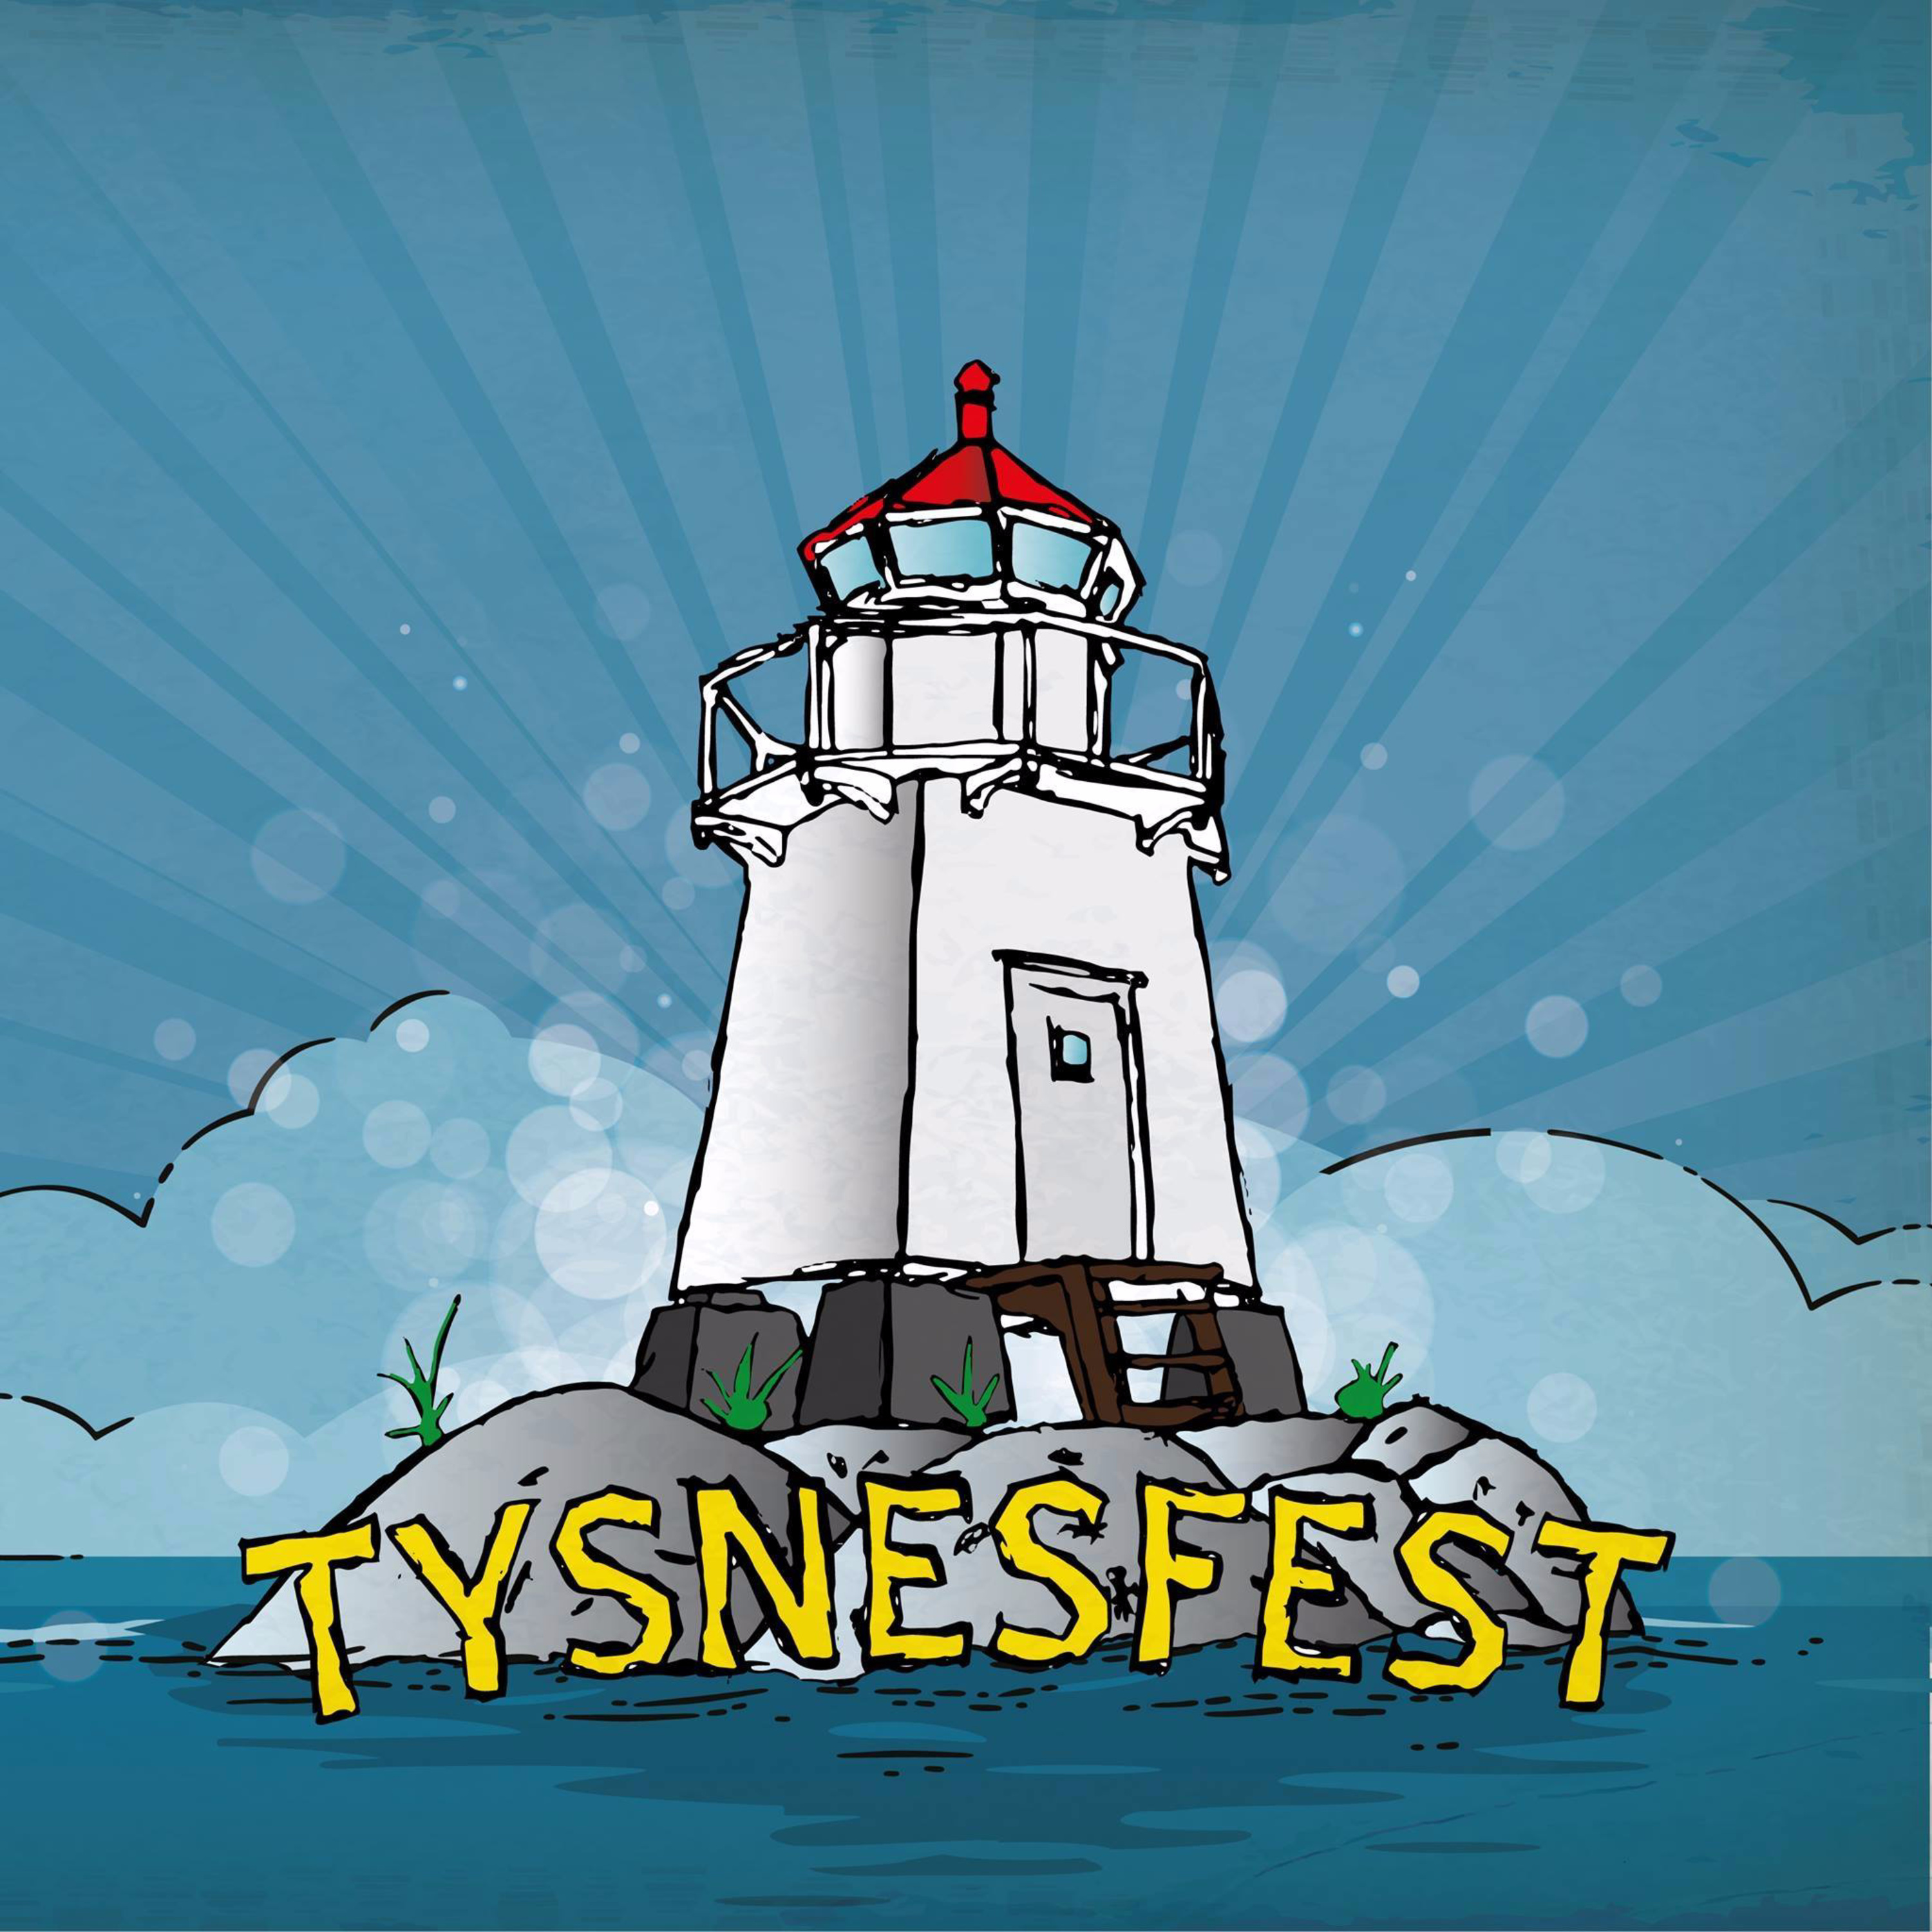 Tysnesfest opening day: Anchors aweigh